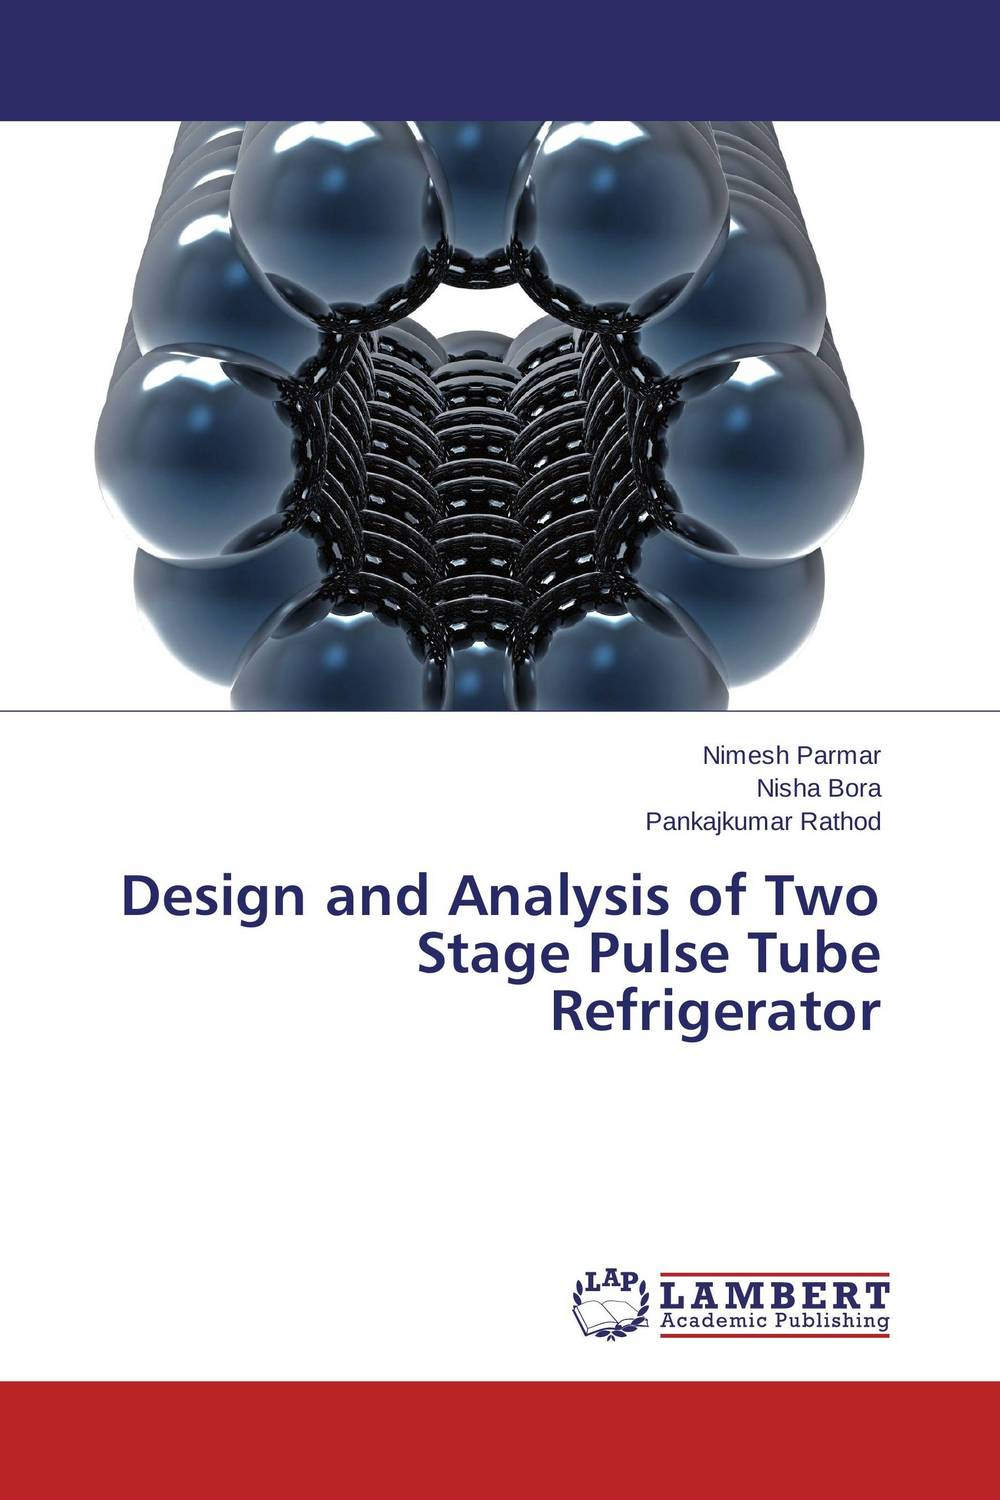 Design and Analysis of Two Stage Pulse Tube Refrigerator